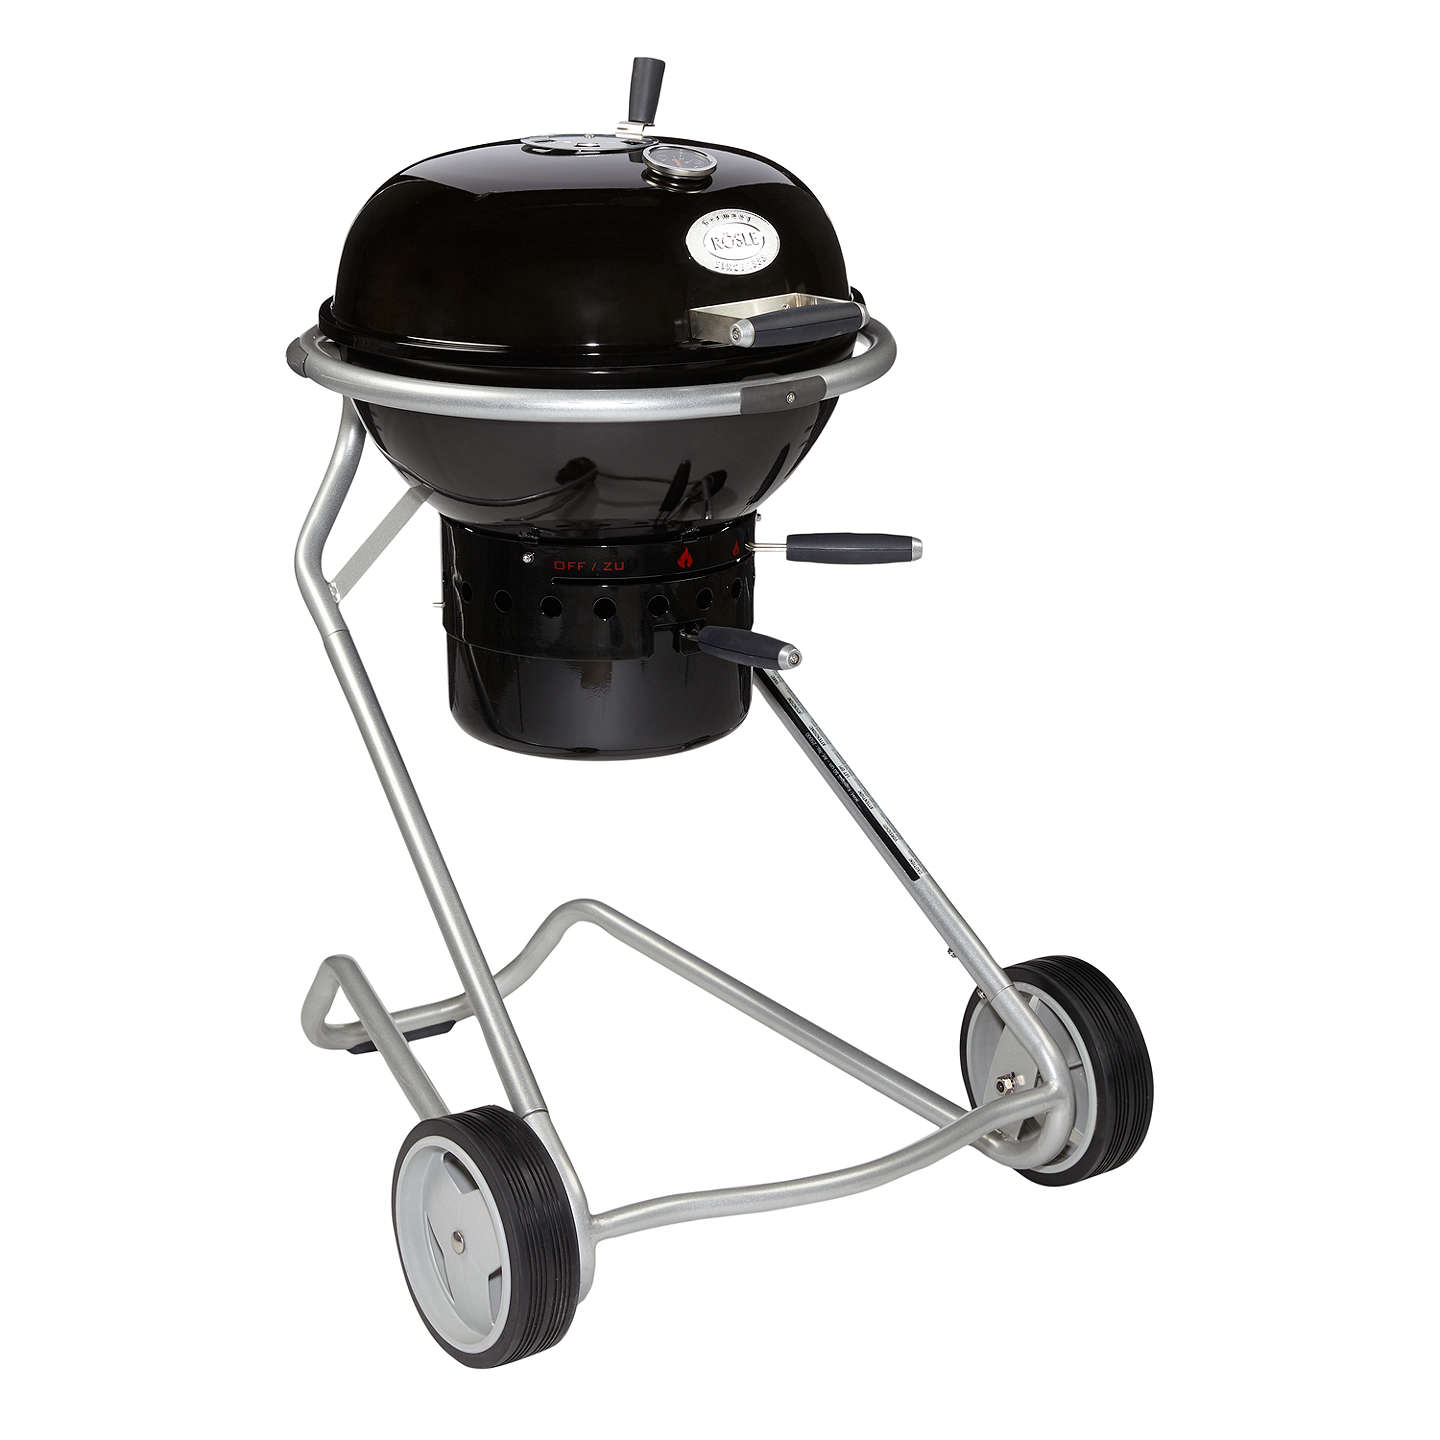 BuyJohn Lewis Luxury Kettle Charcoal BBQ, Black, 50cm Online at johnlewis.com